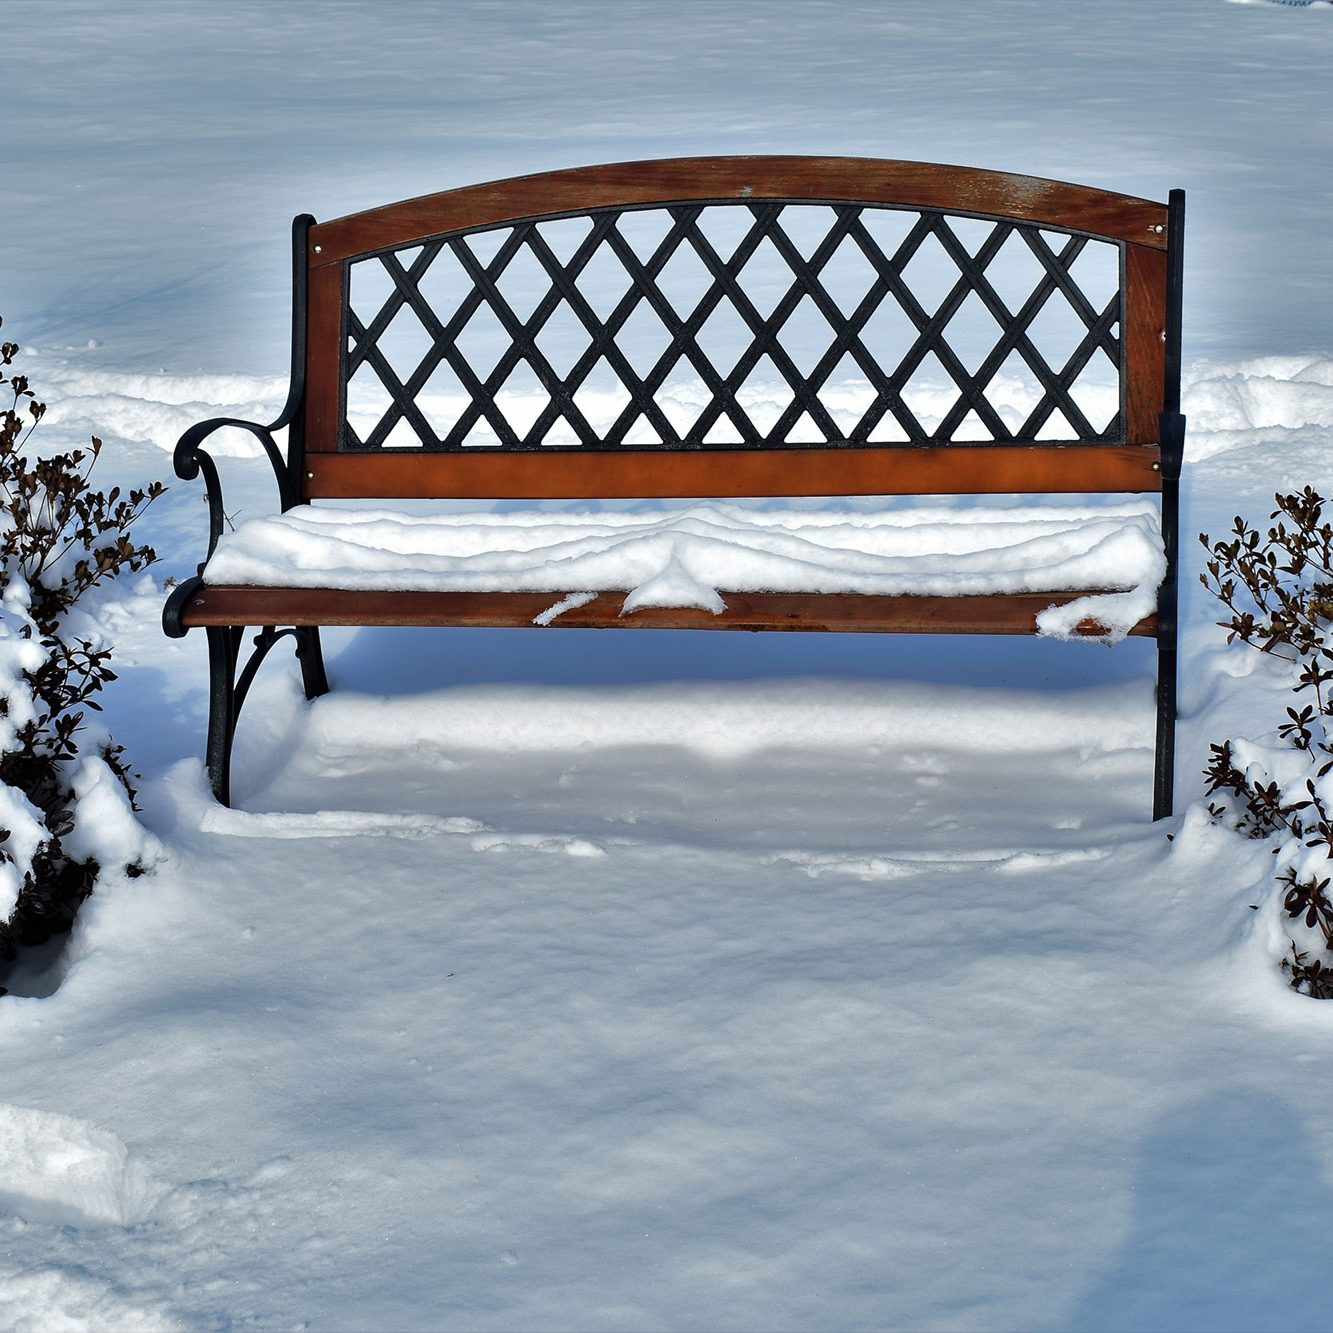 Backyard Bench Under Snow